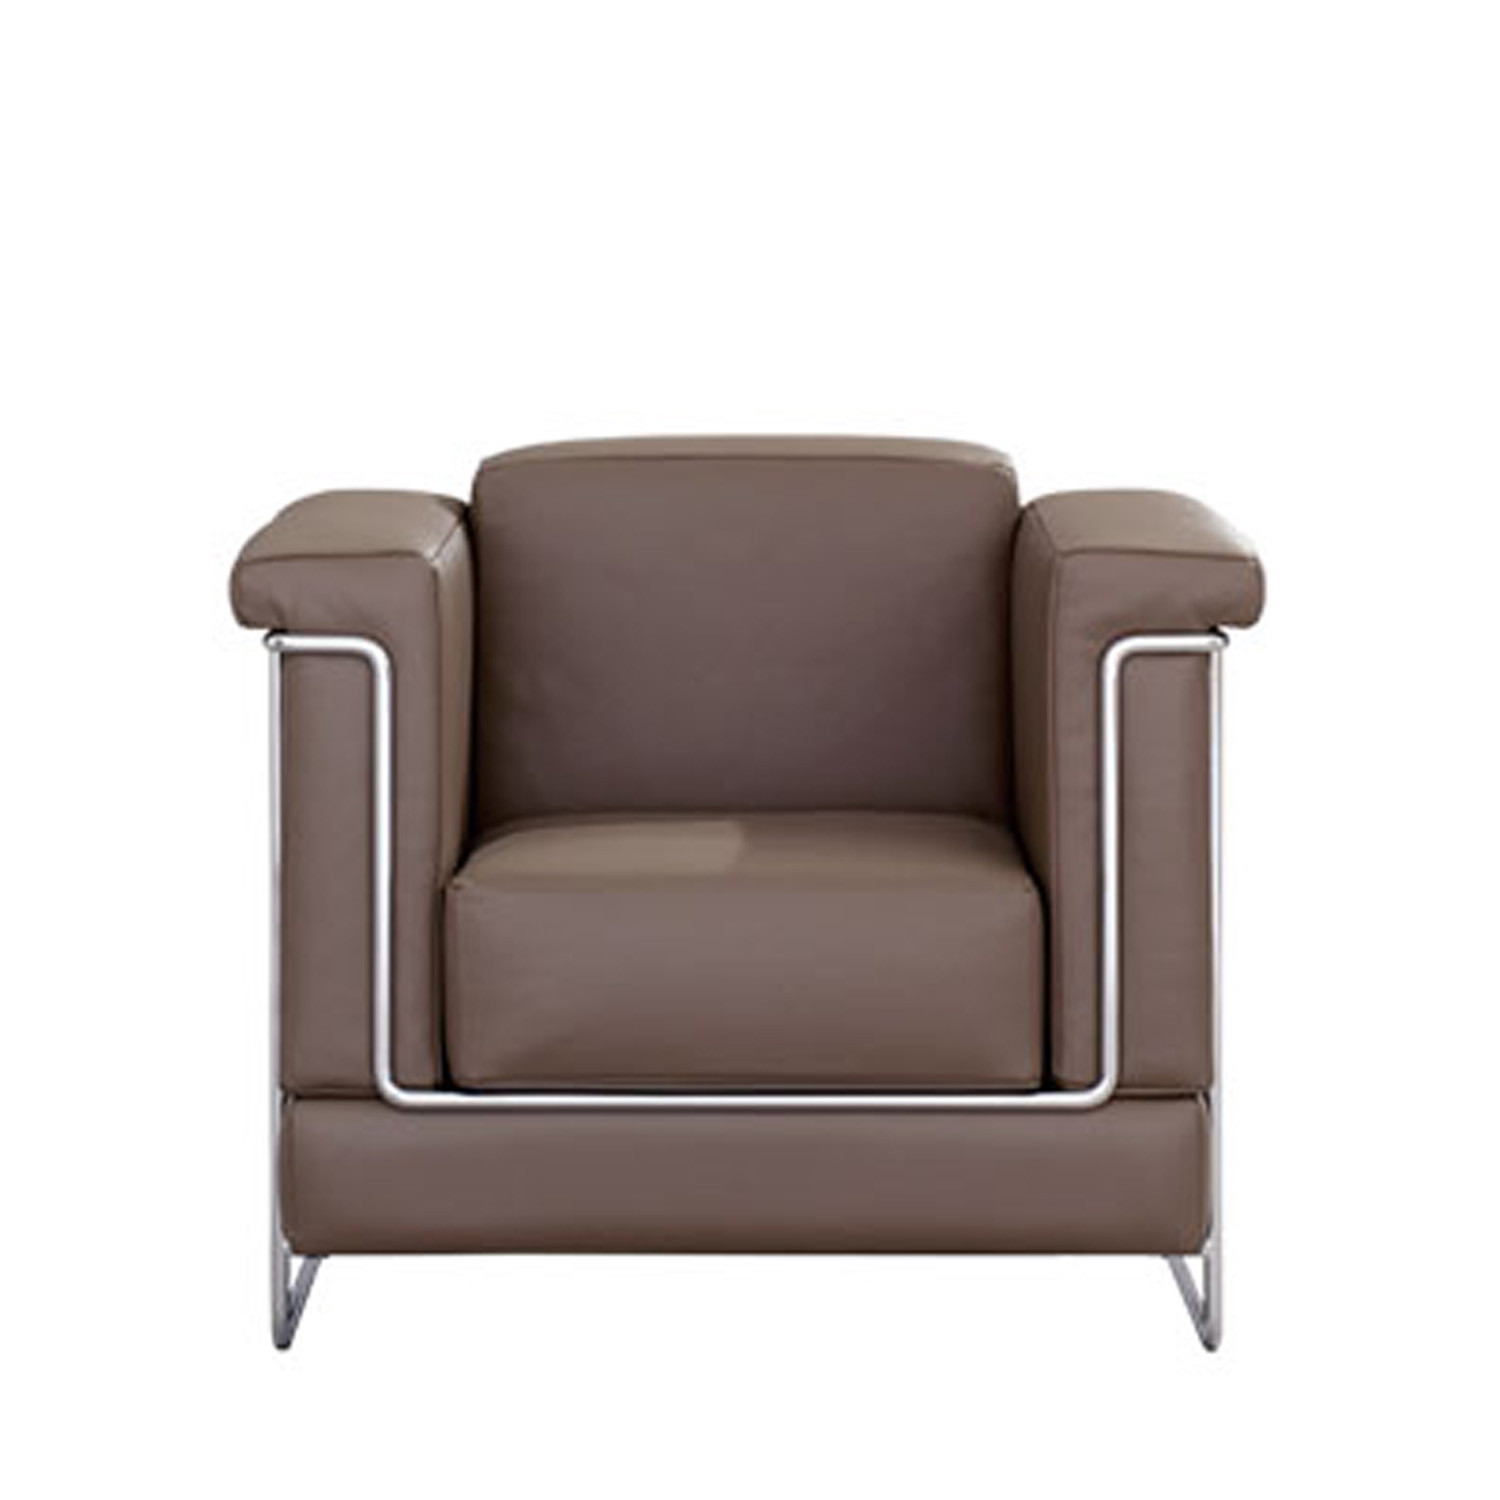 Carat Armchair and Sofa